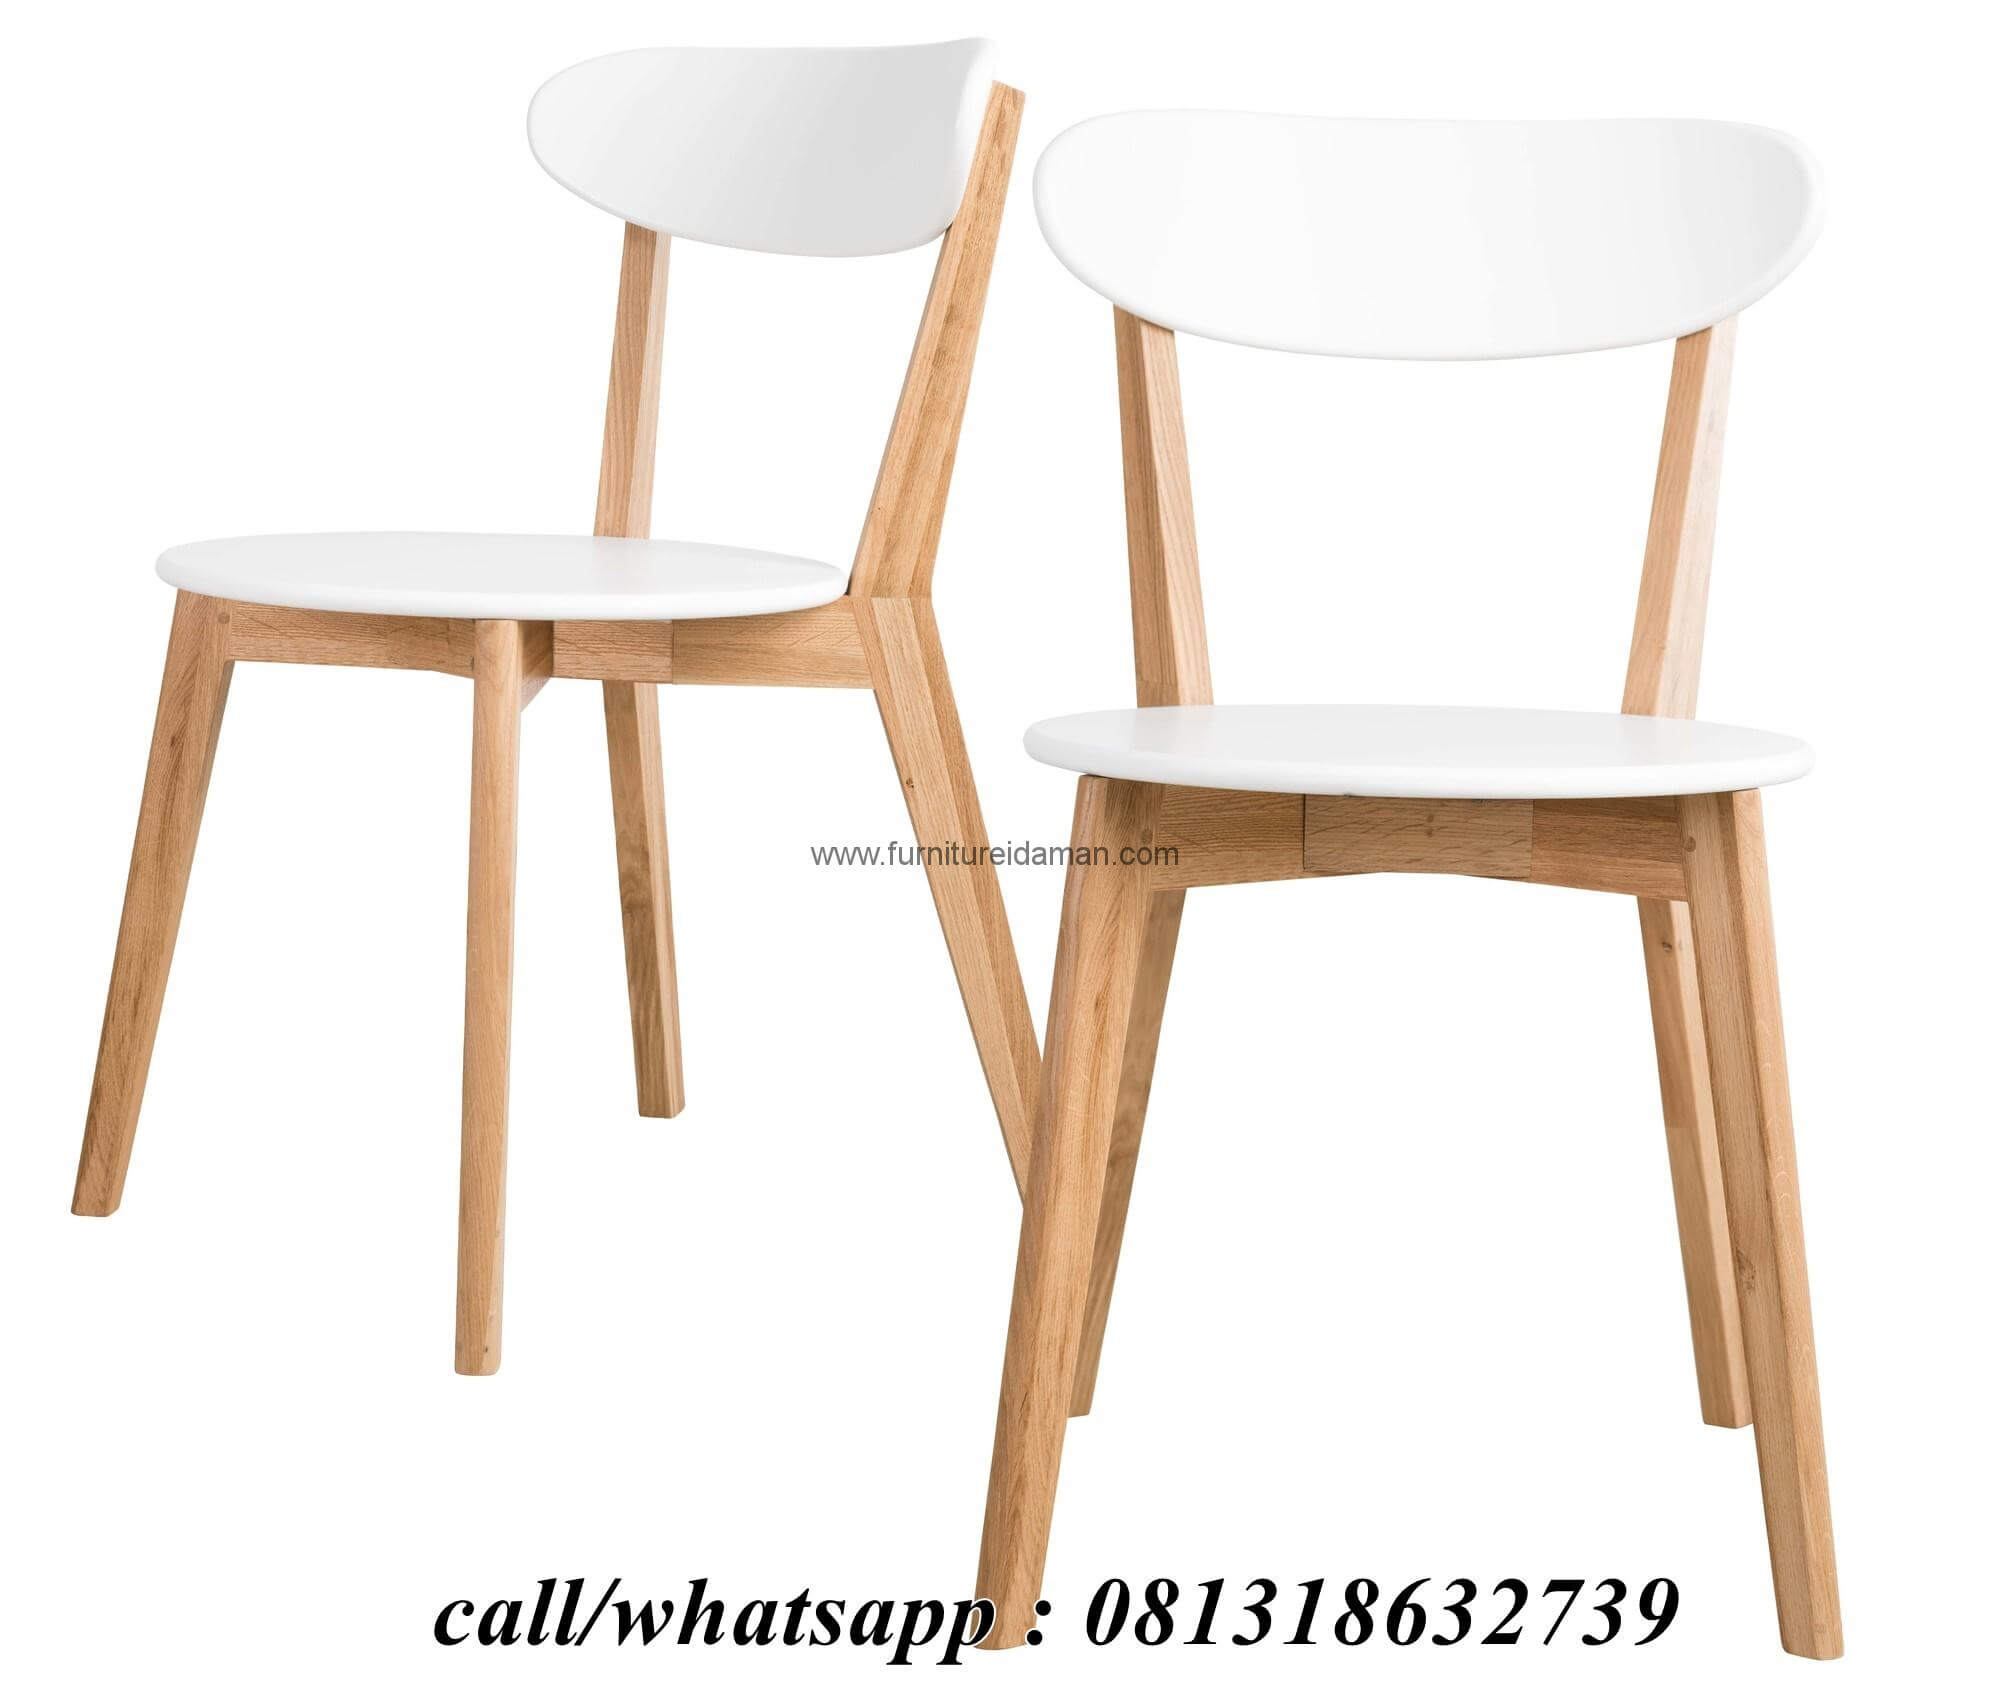 Kursi Makan Cafe Modern Cat Kombinasi Kci 130 Furniture Idaman